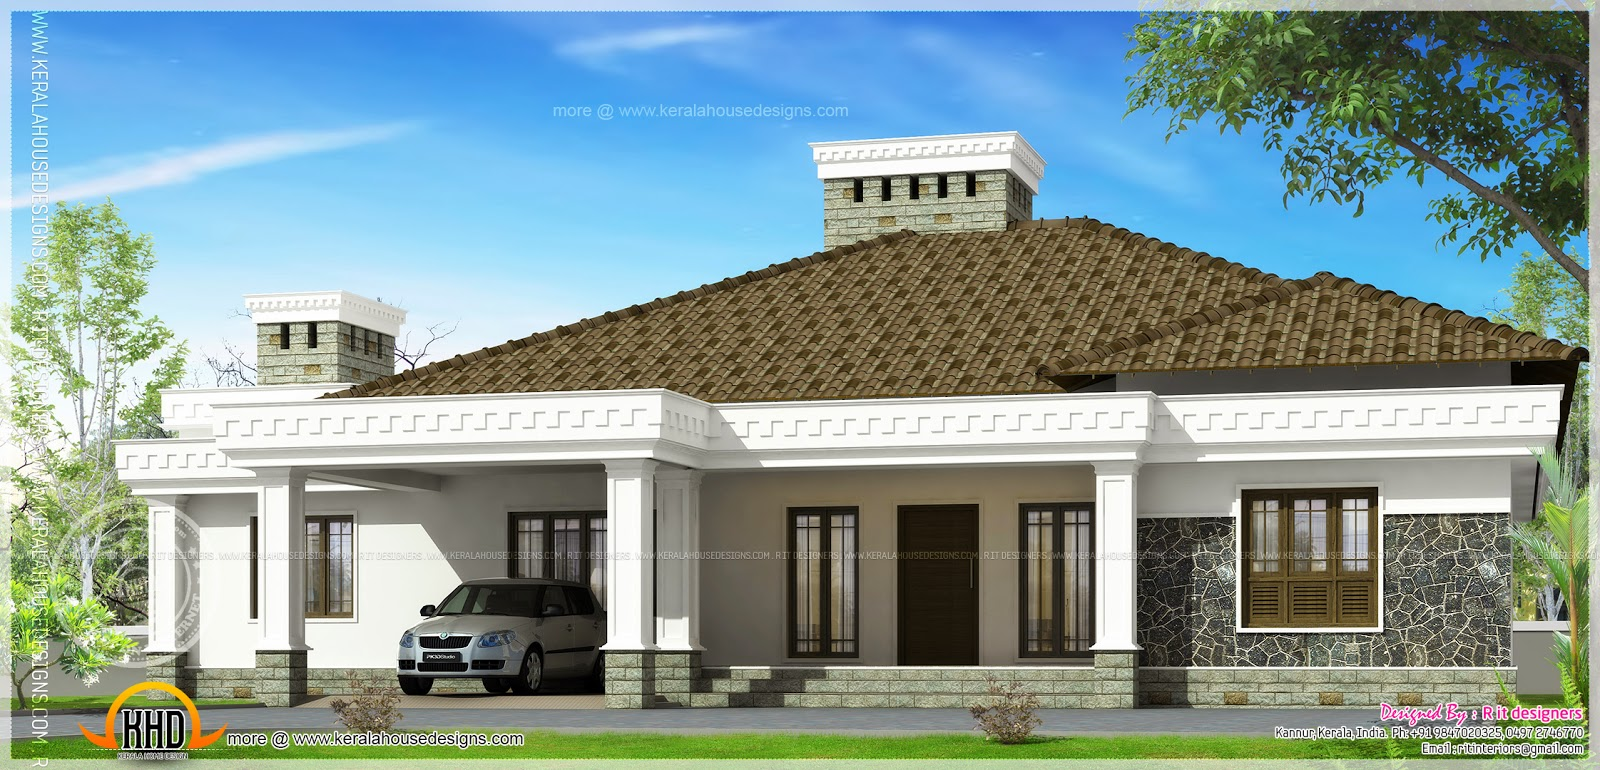 Big single storied house exterior kerala home design and for One level house exterior design